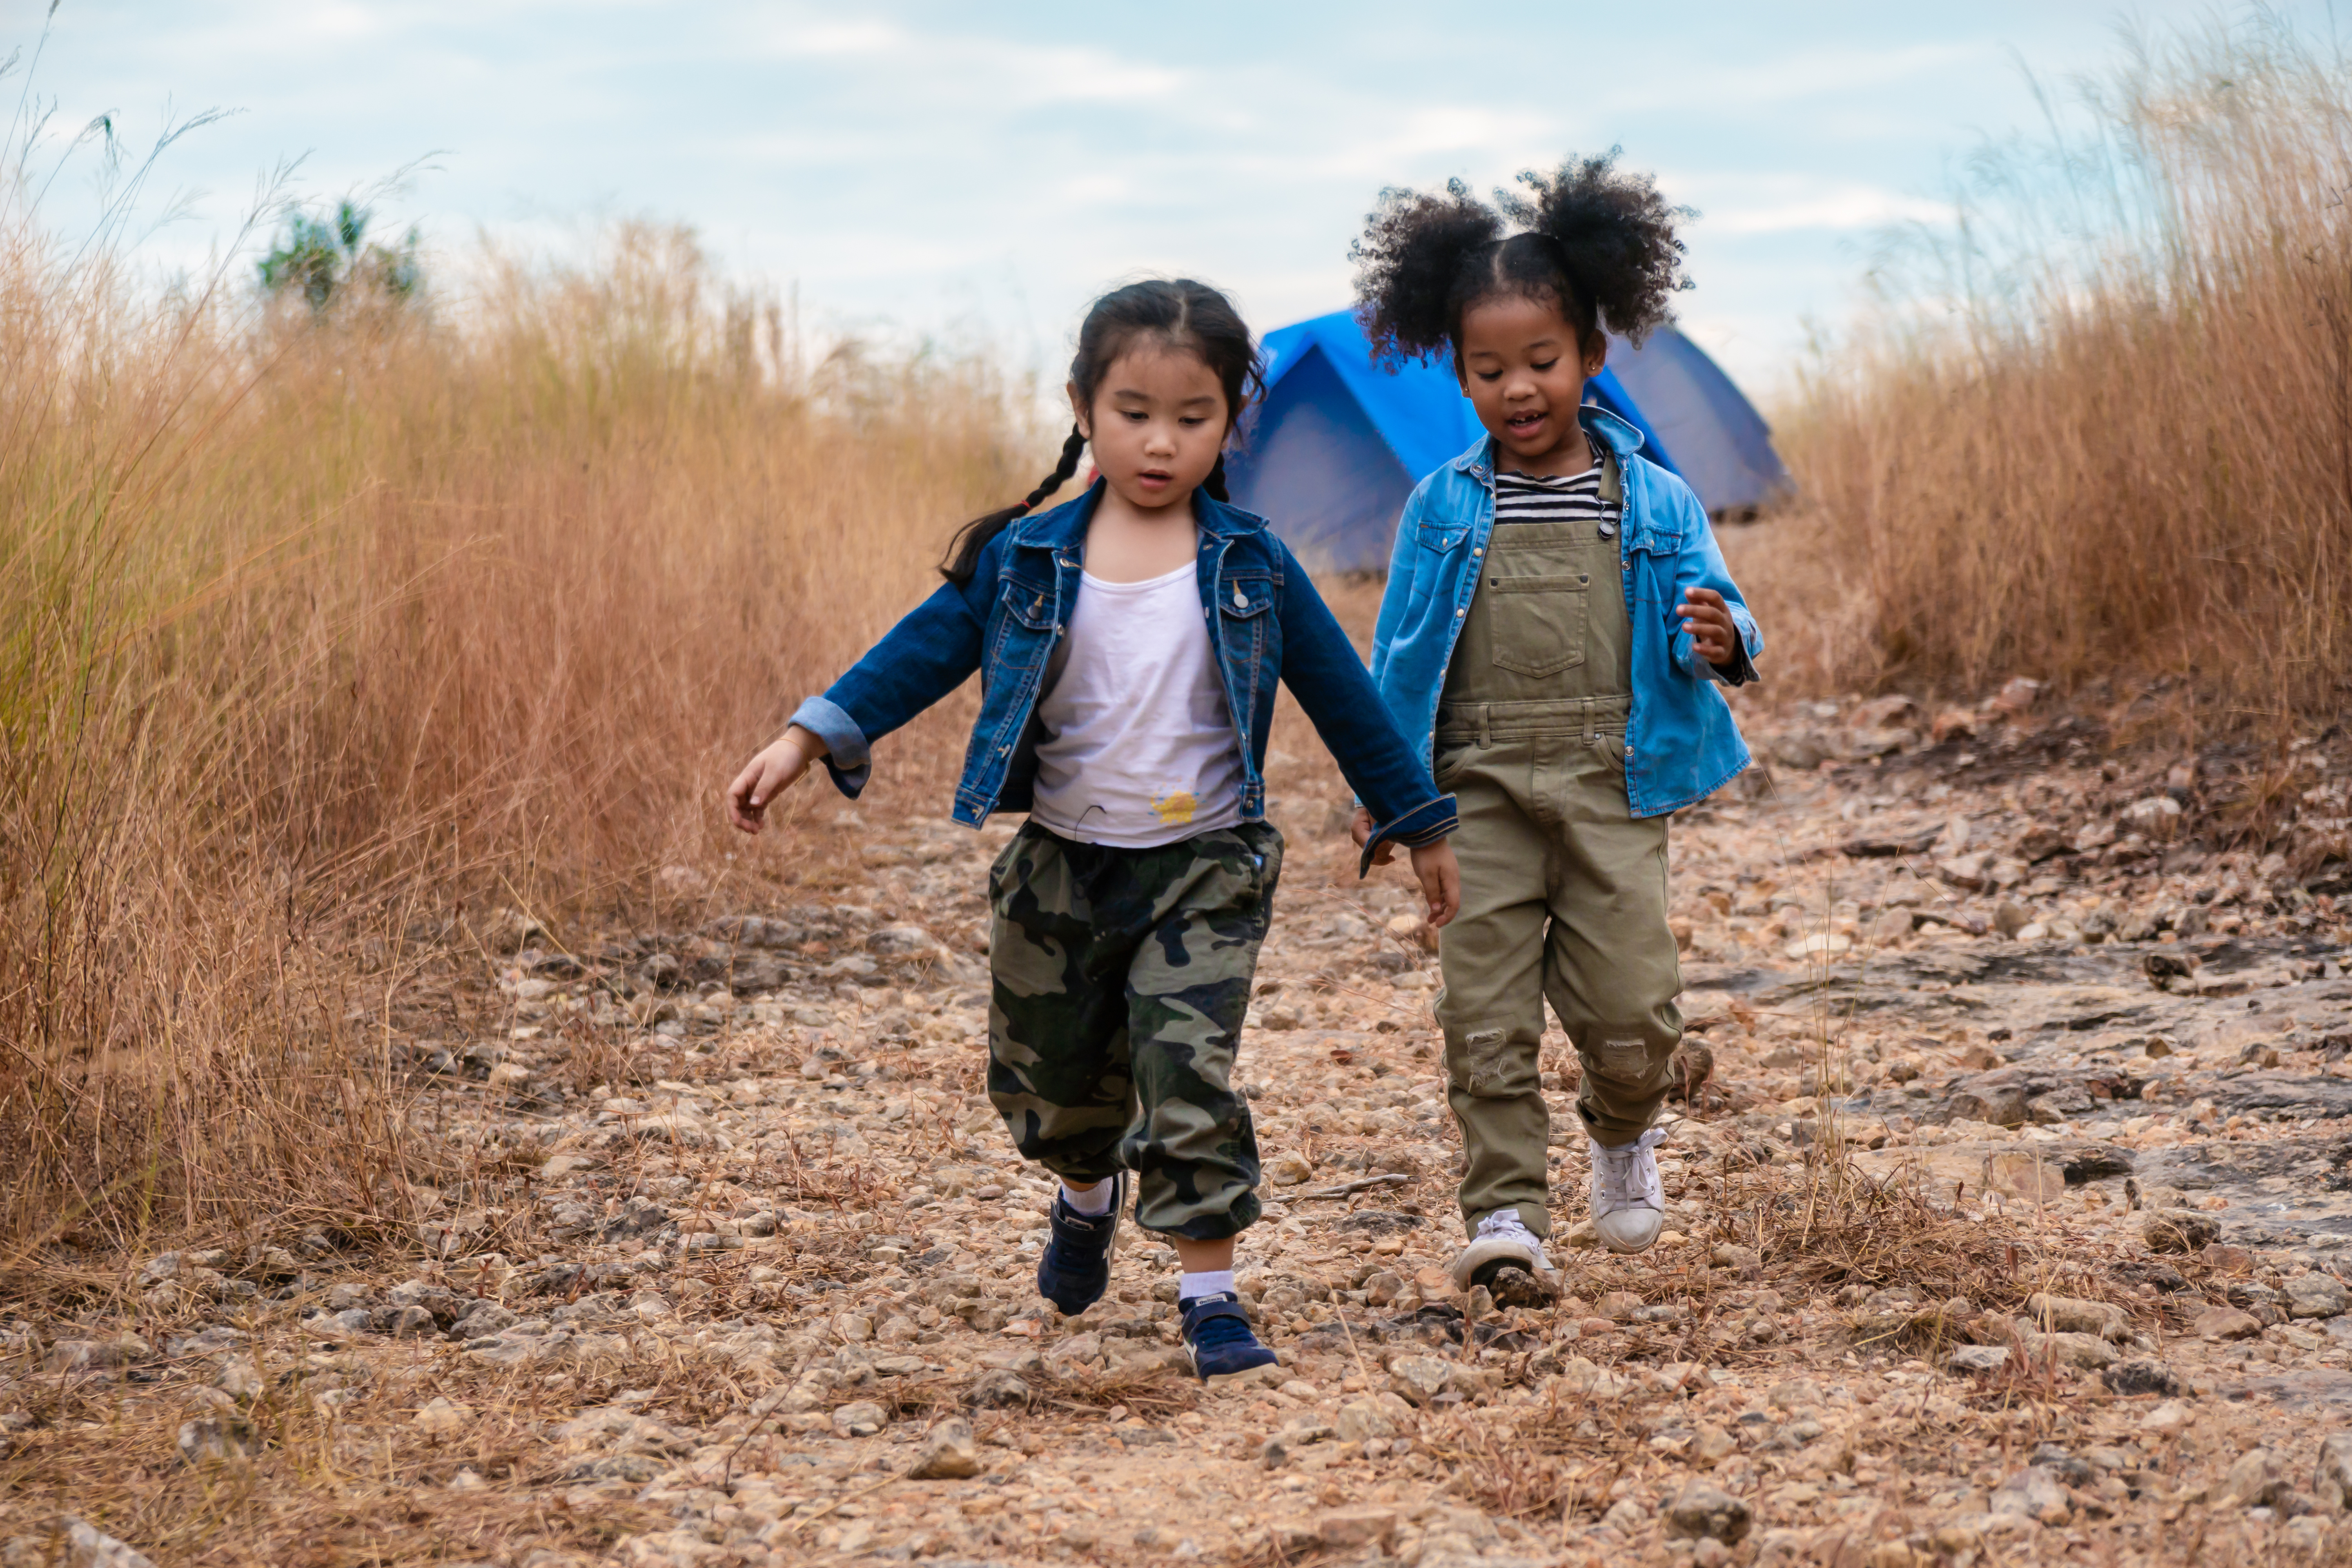 young girls walk near a tent in a field